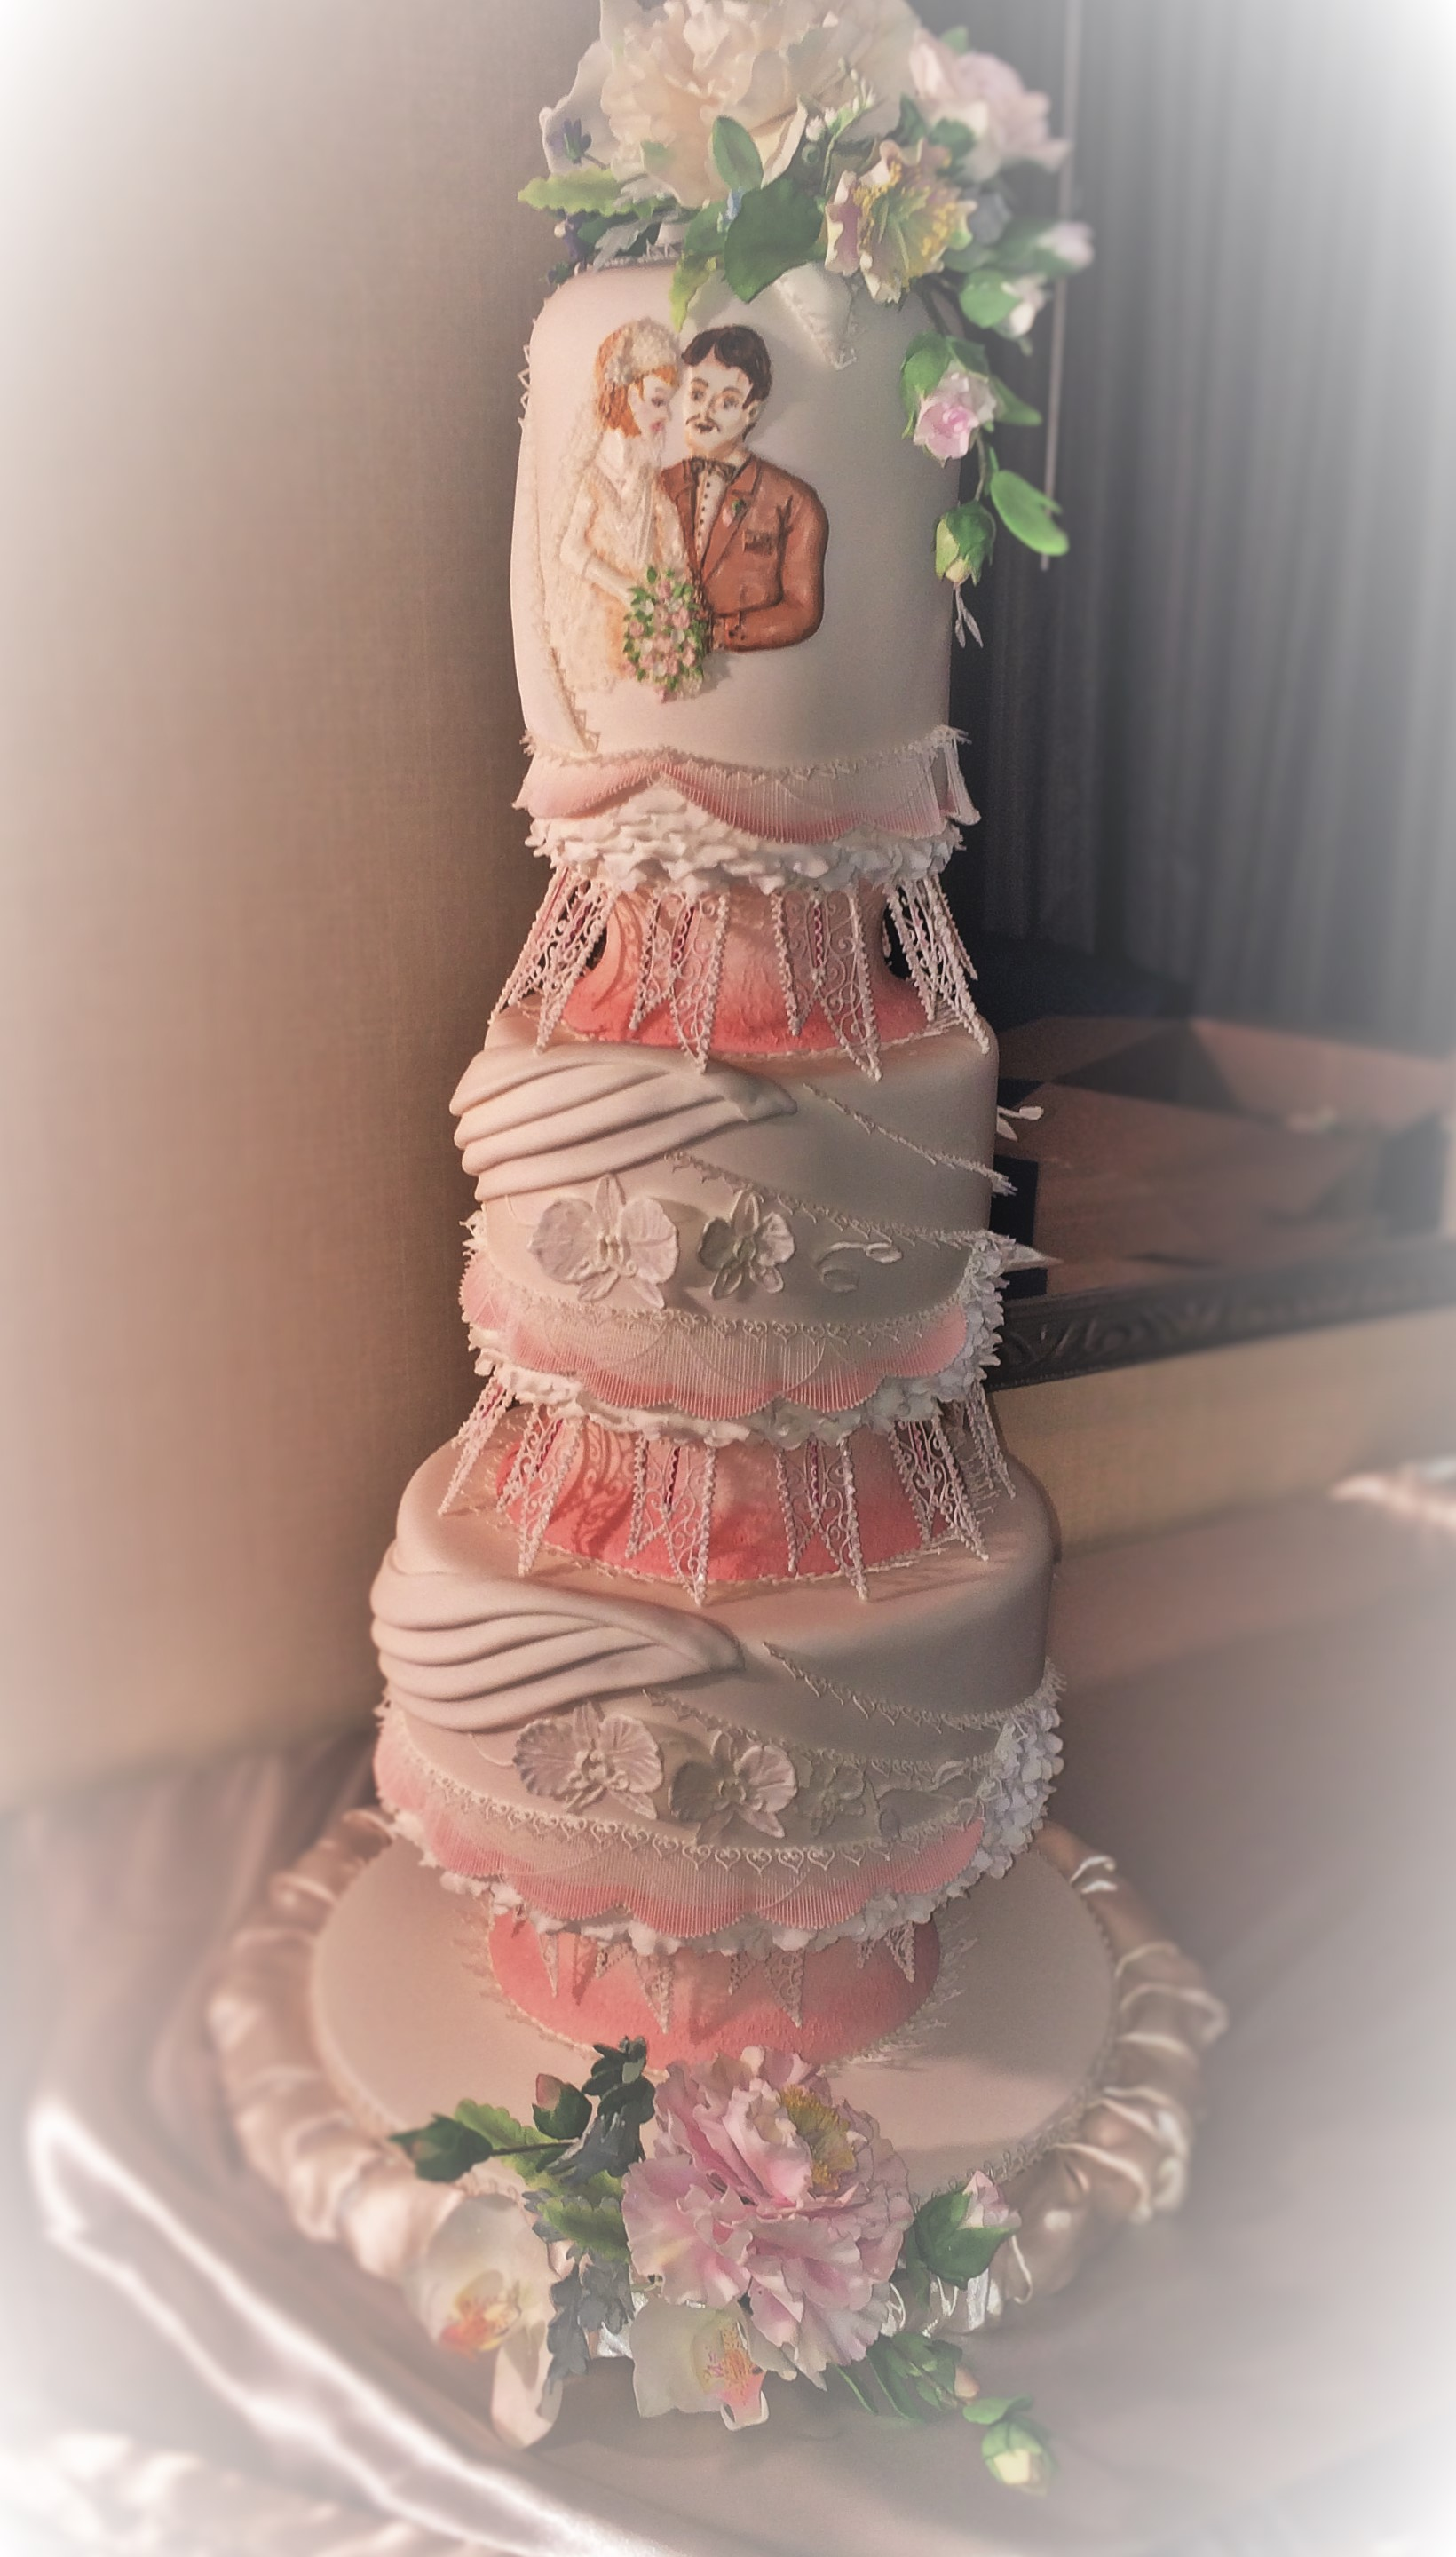 Ossas 2014 Grand National Wedding Cake Competition Usa